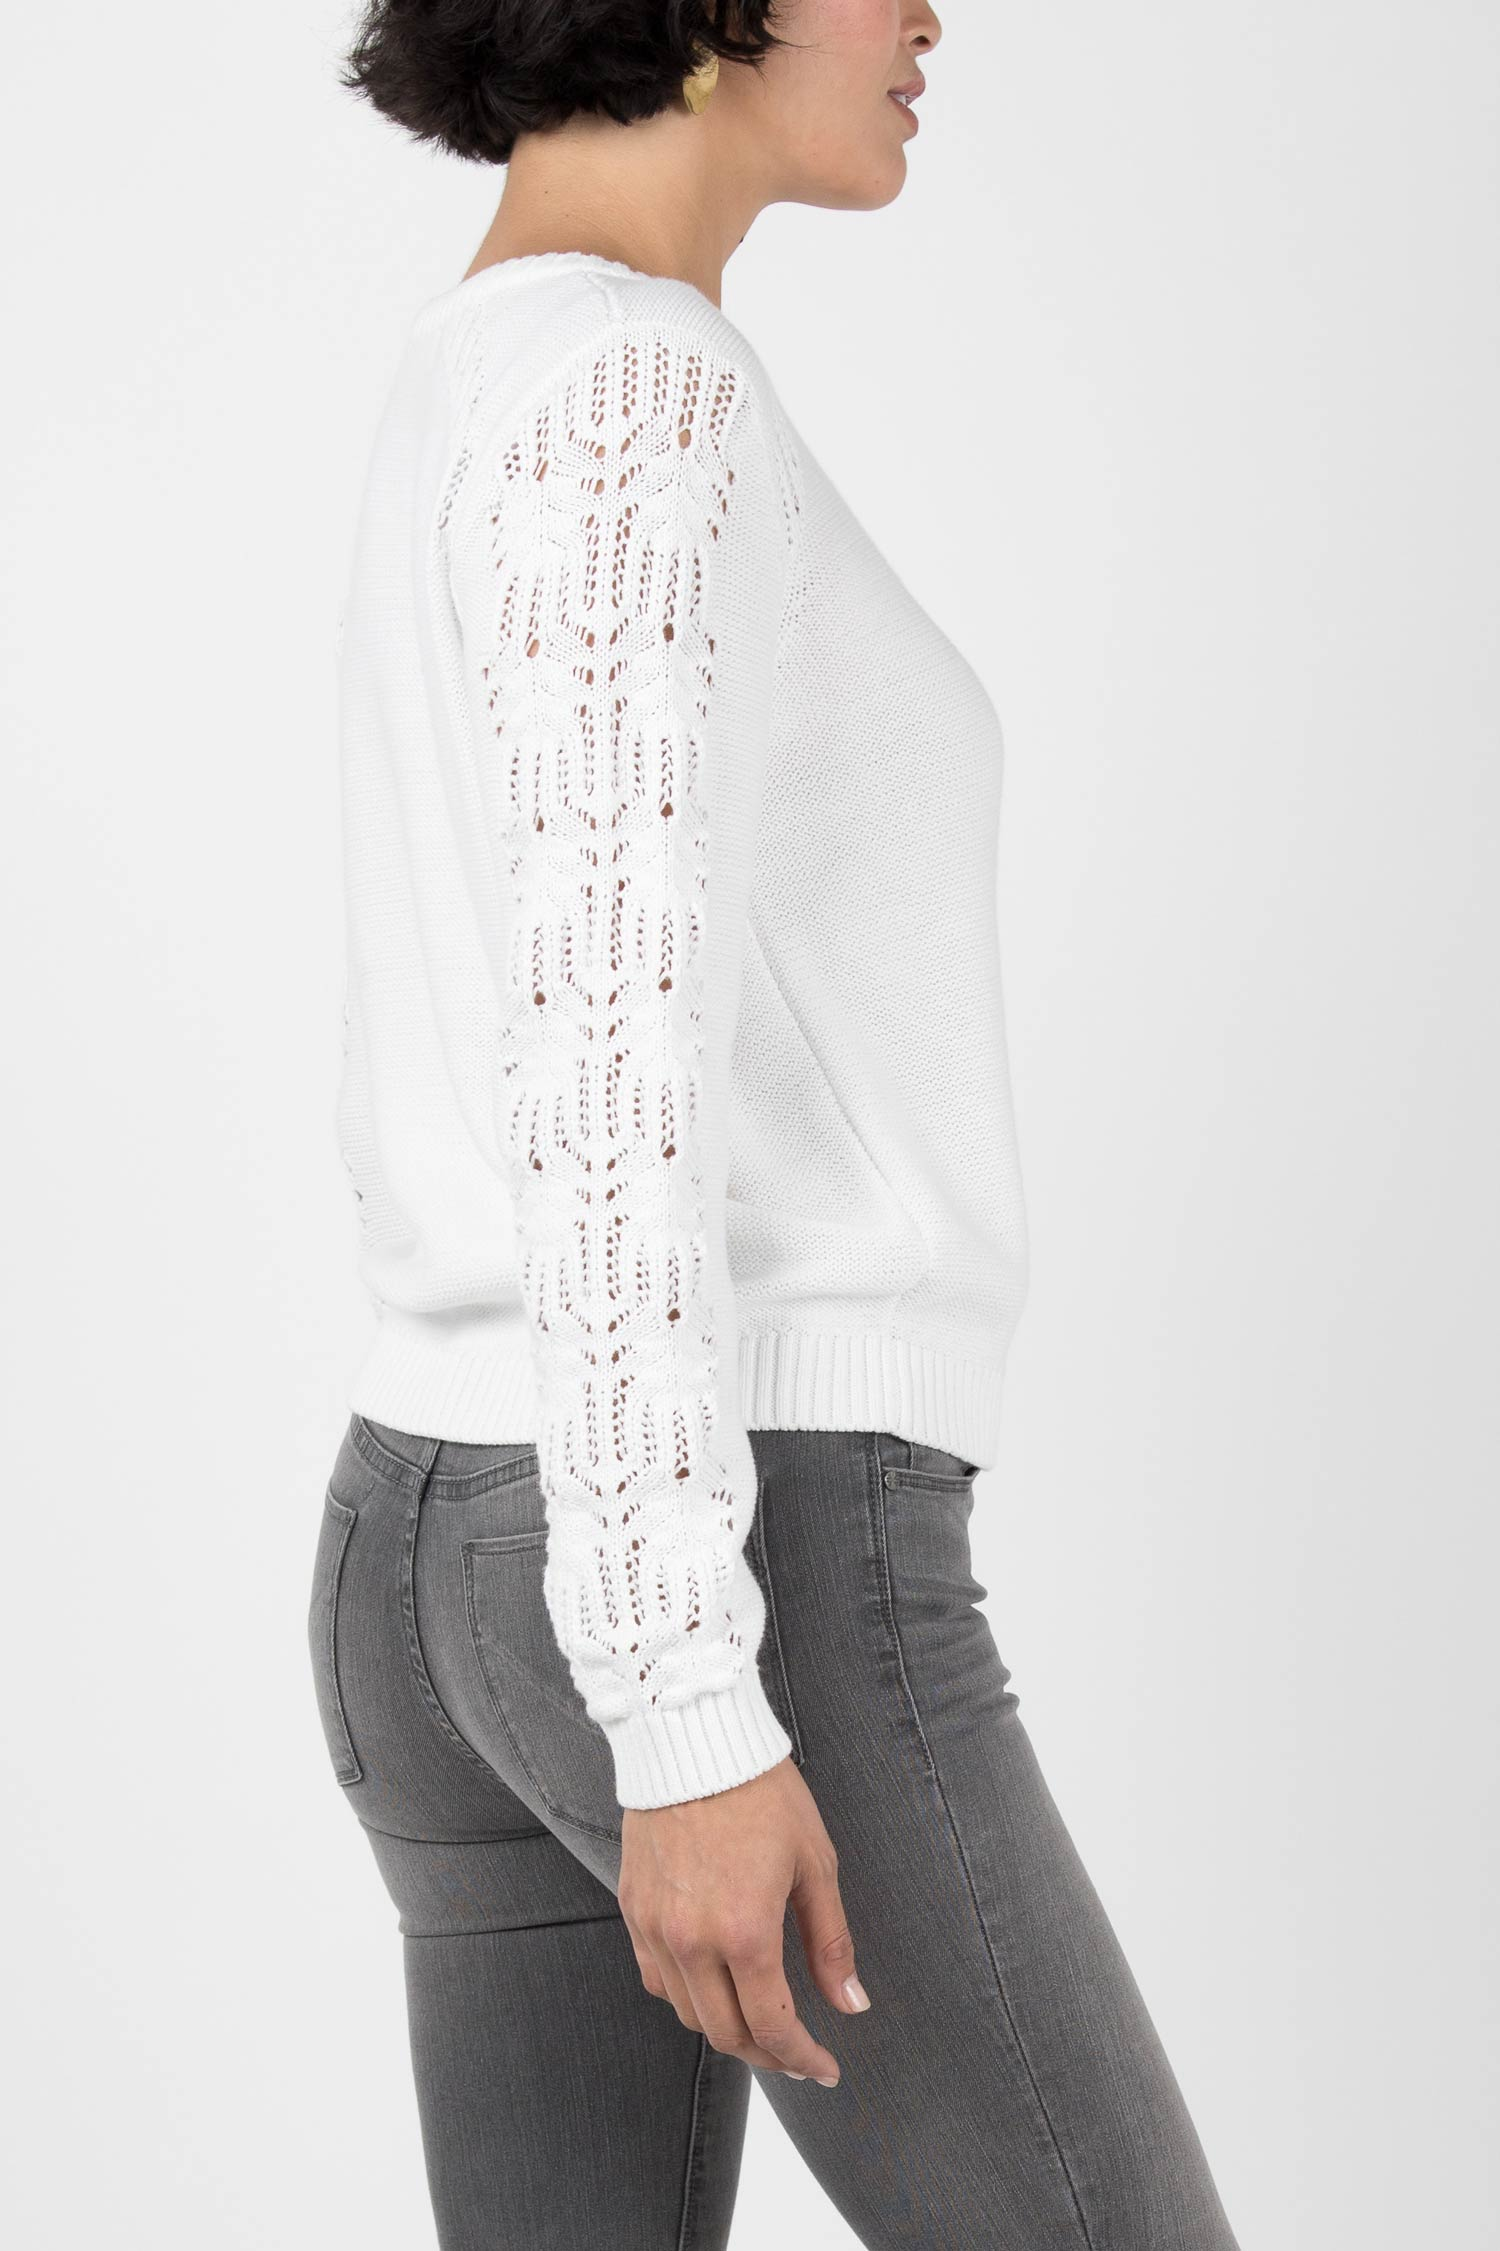 Crochet Sleeve Sweater - Indigenous